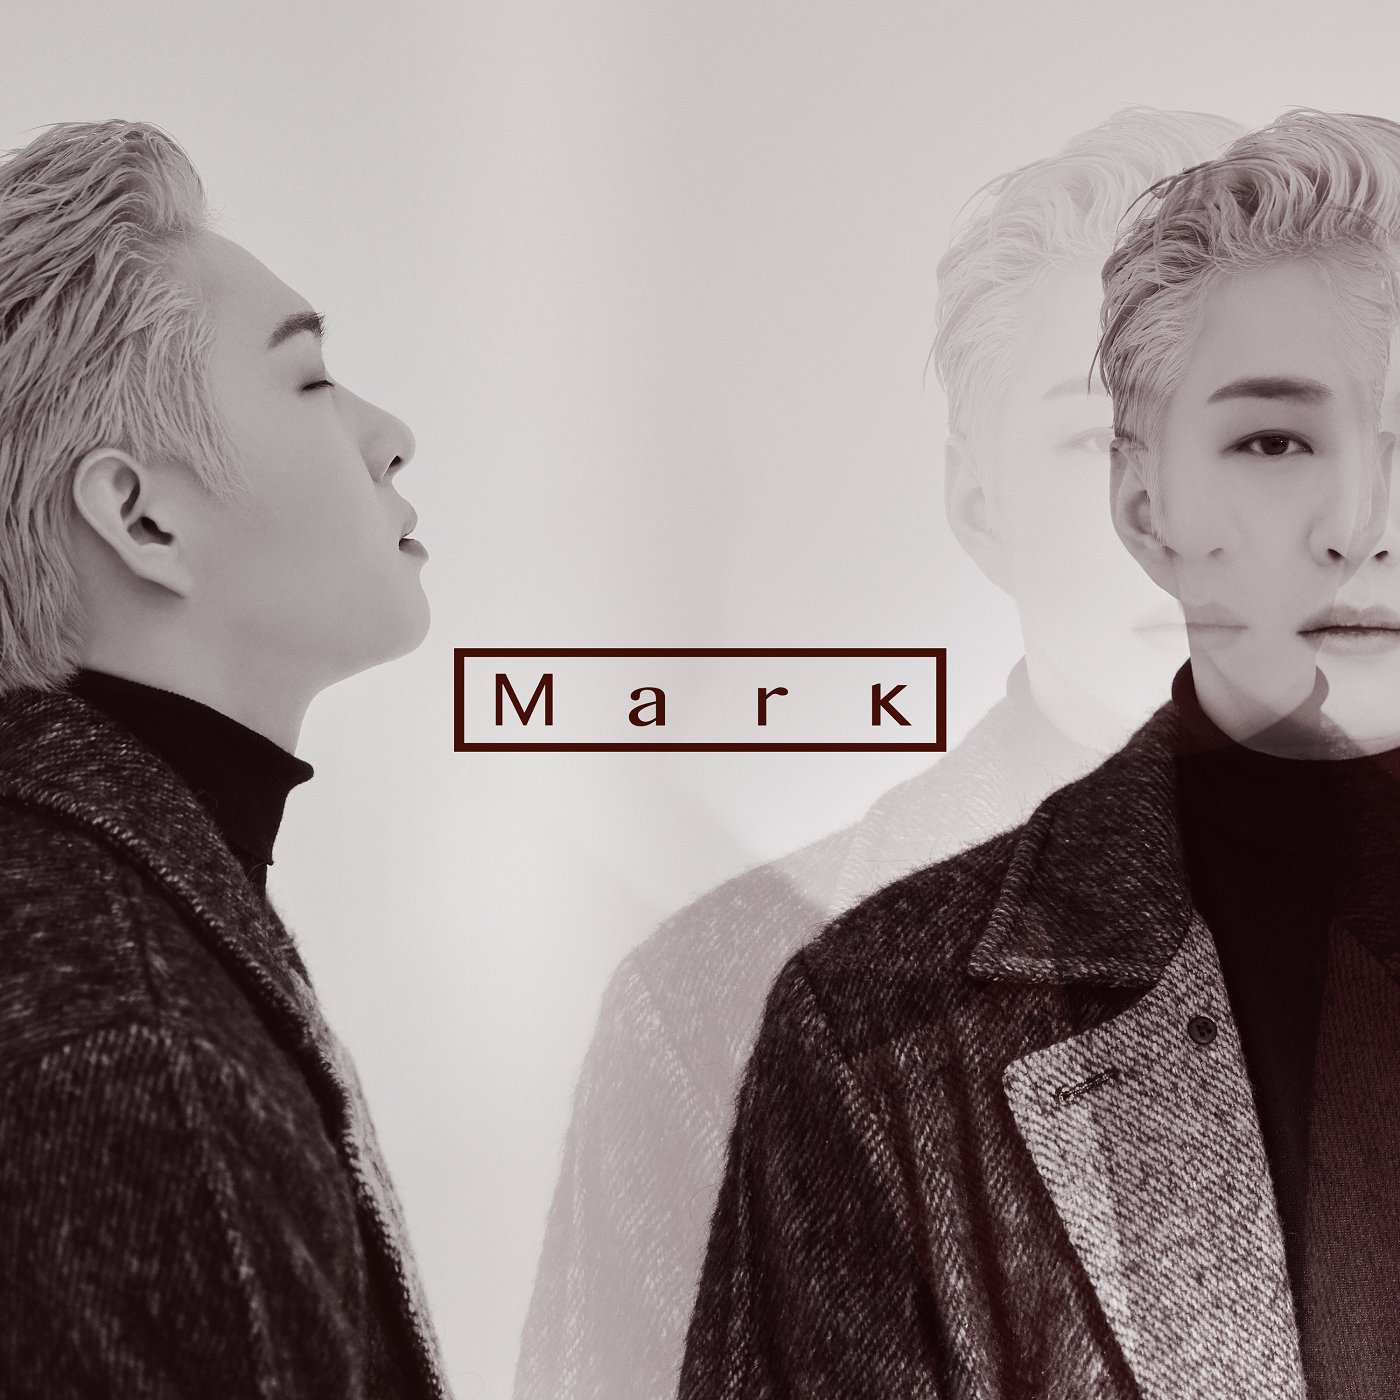 Mark (Lee Changsub)